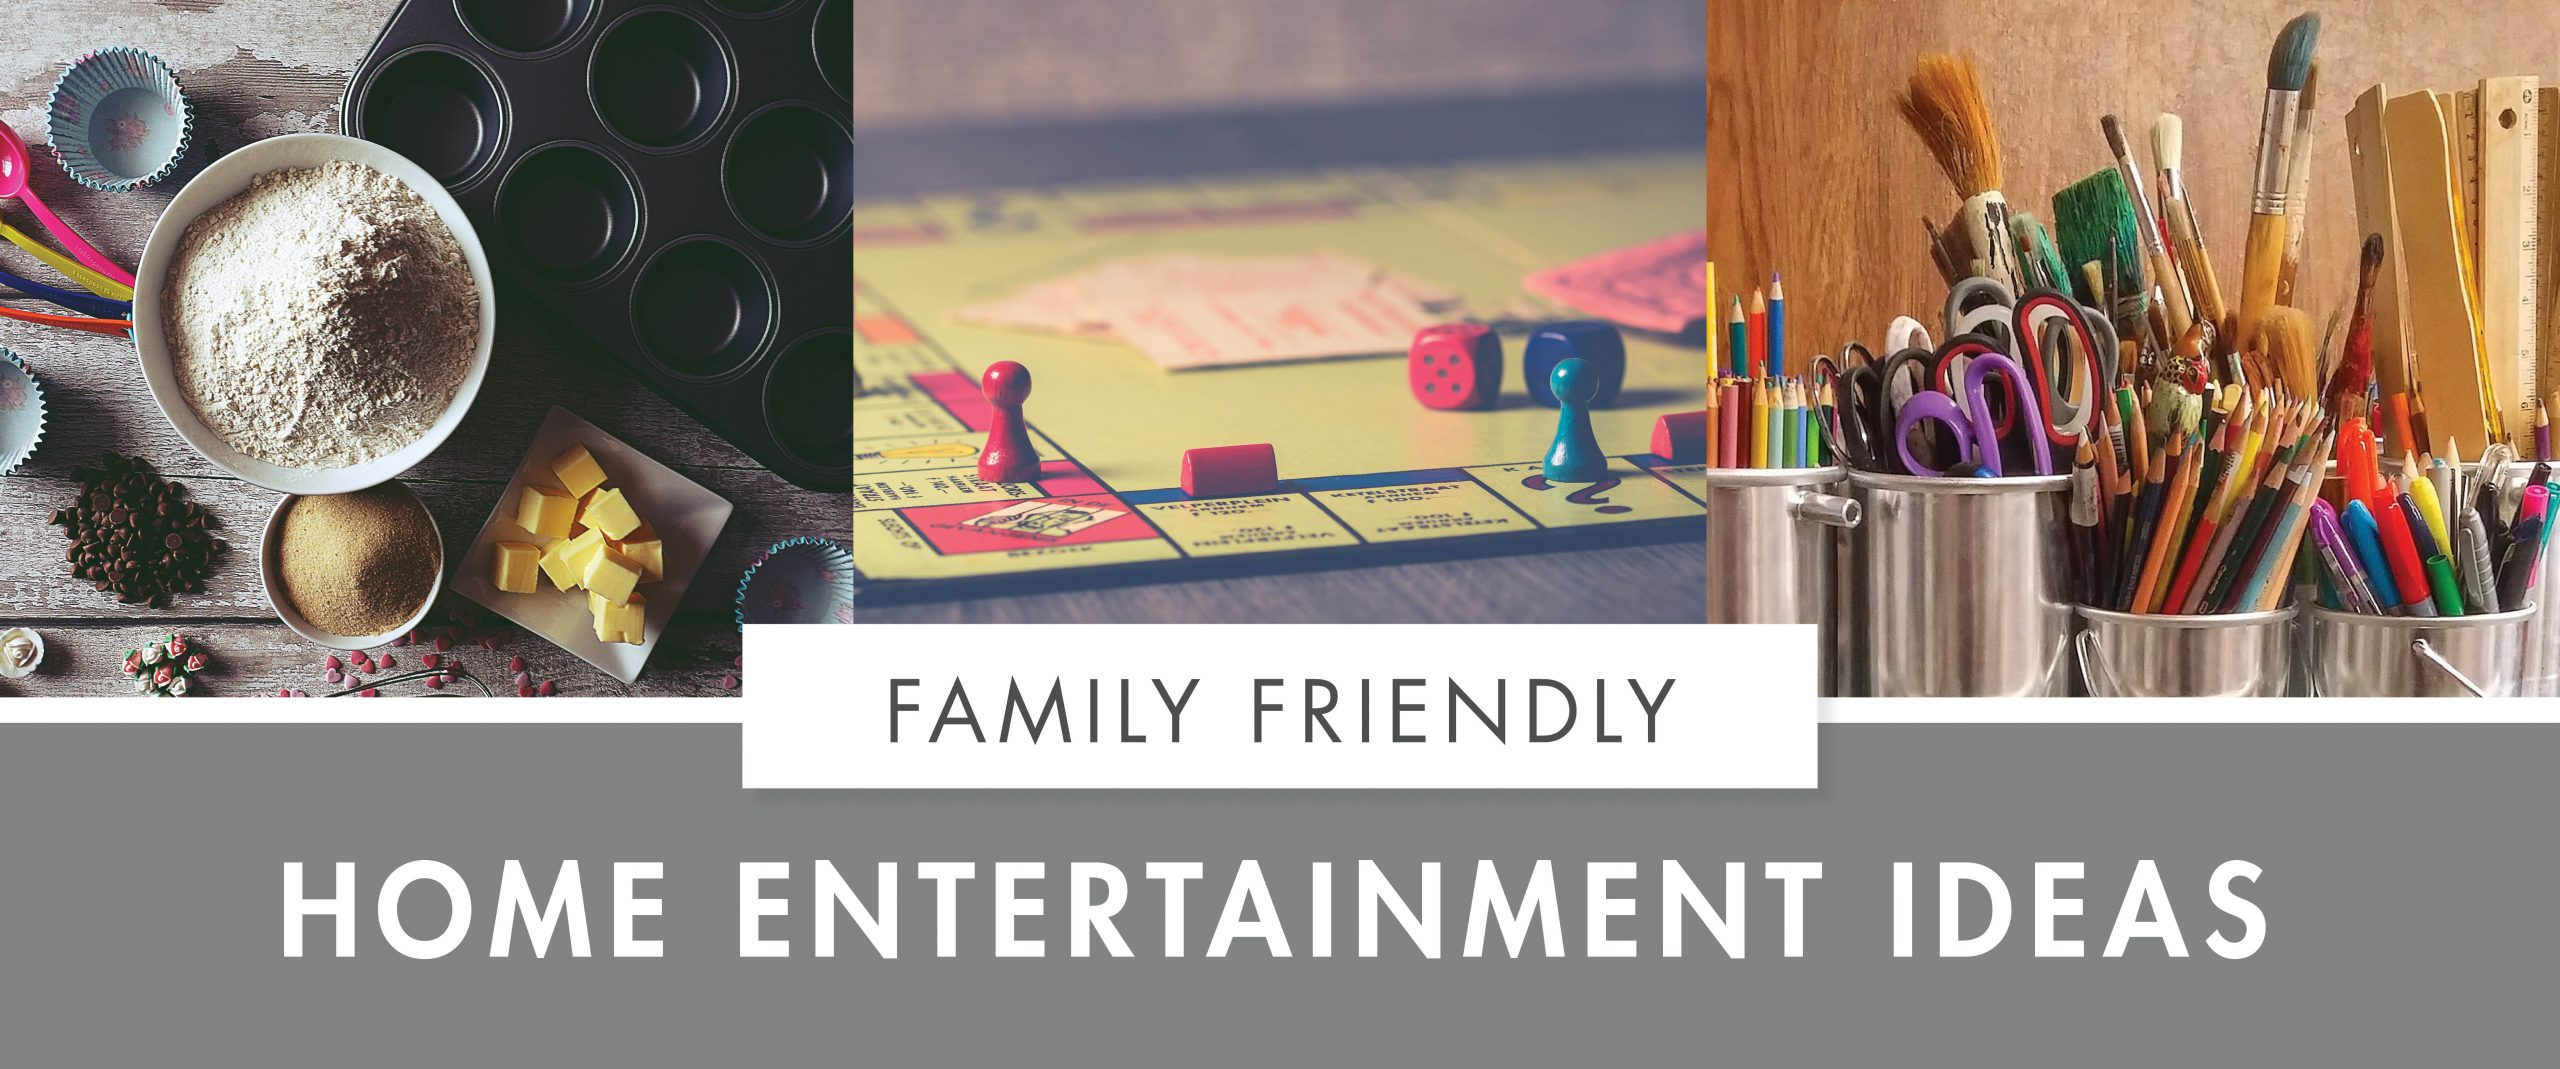 Family Friendly Home Entertainment Ideas